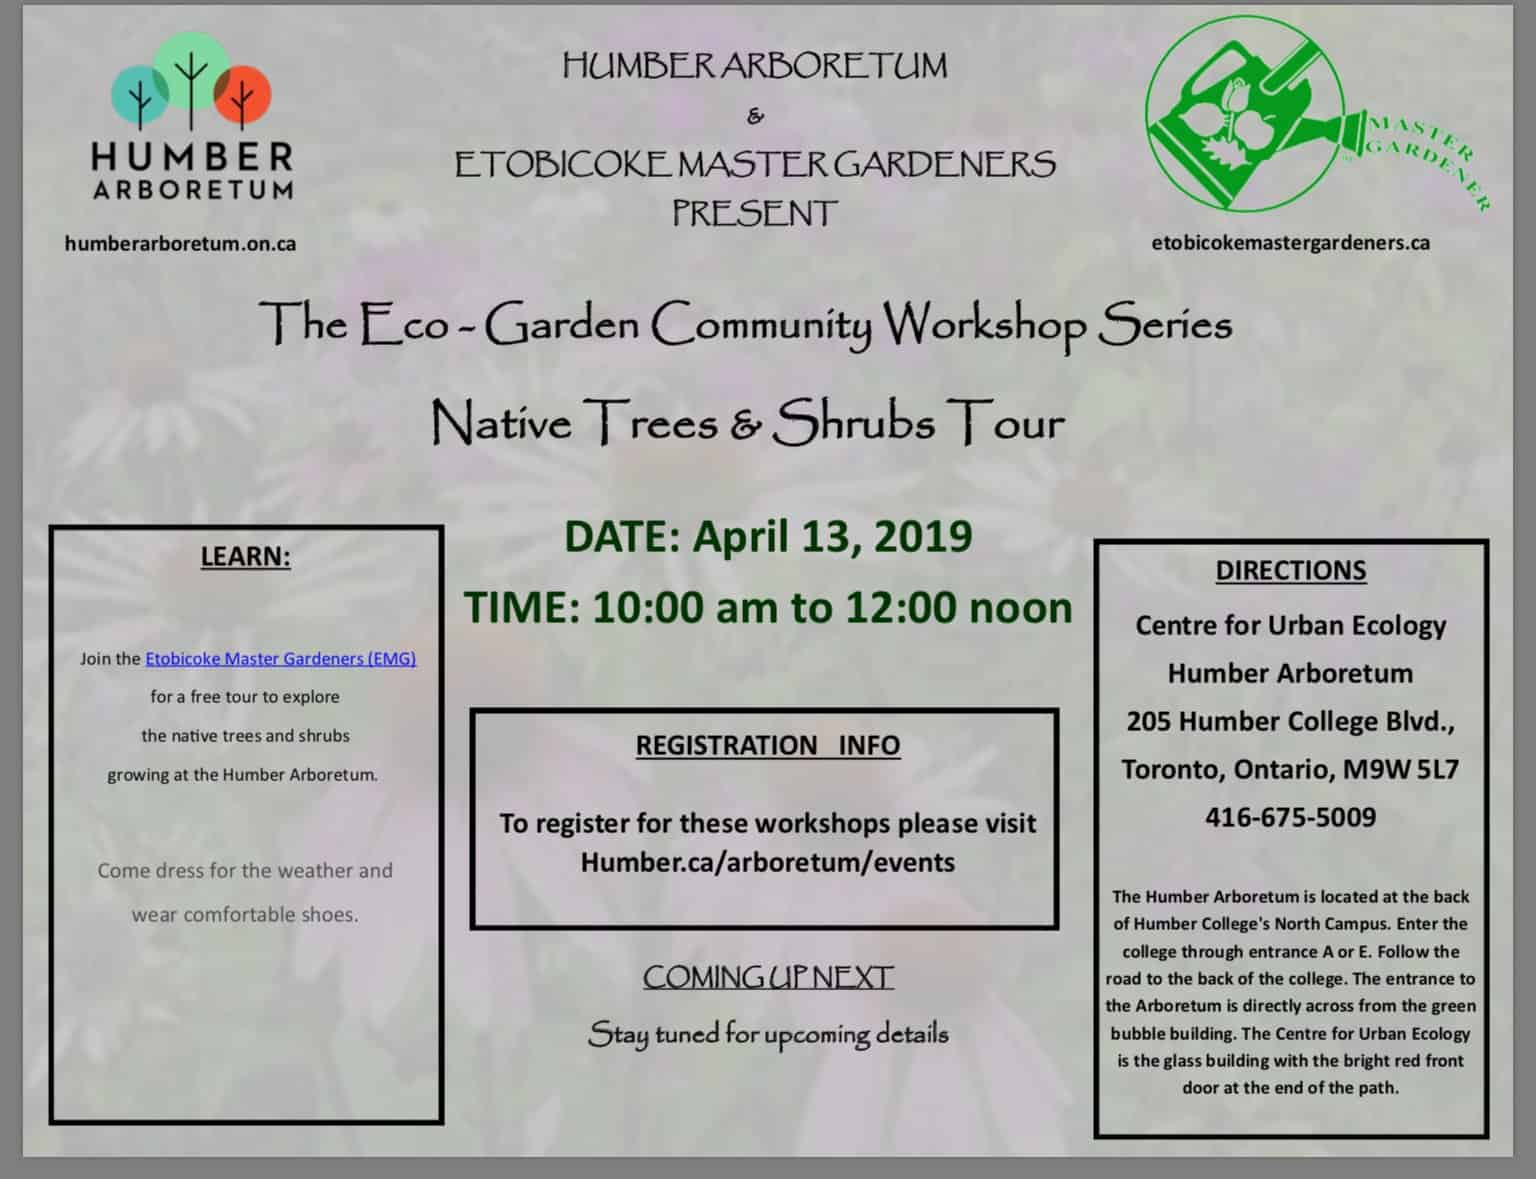 Native Trees & Shrubs Tour